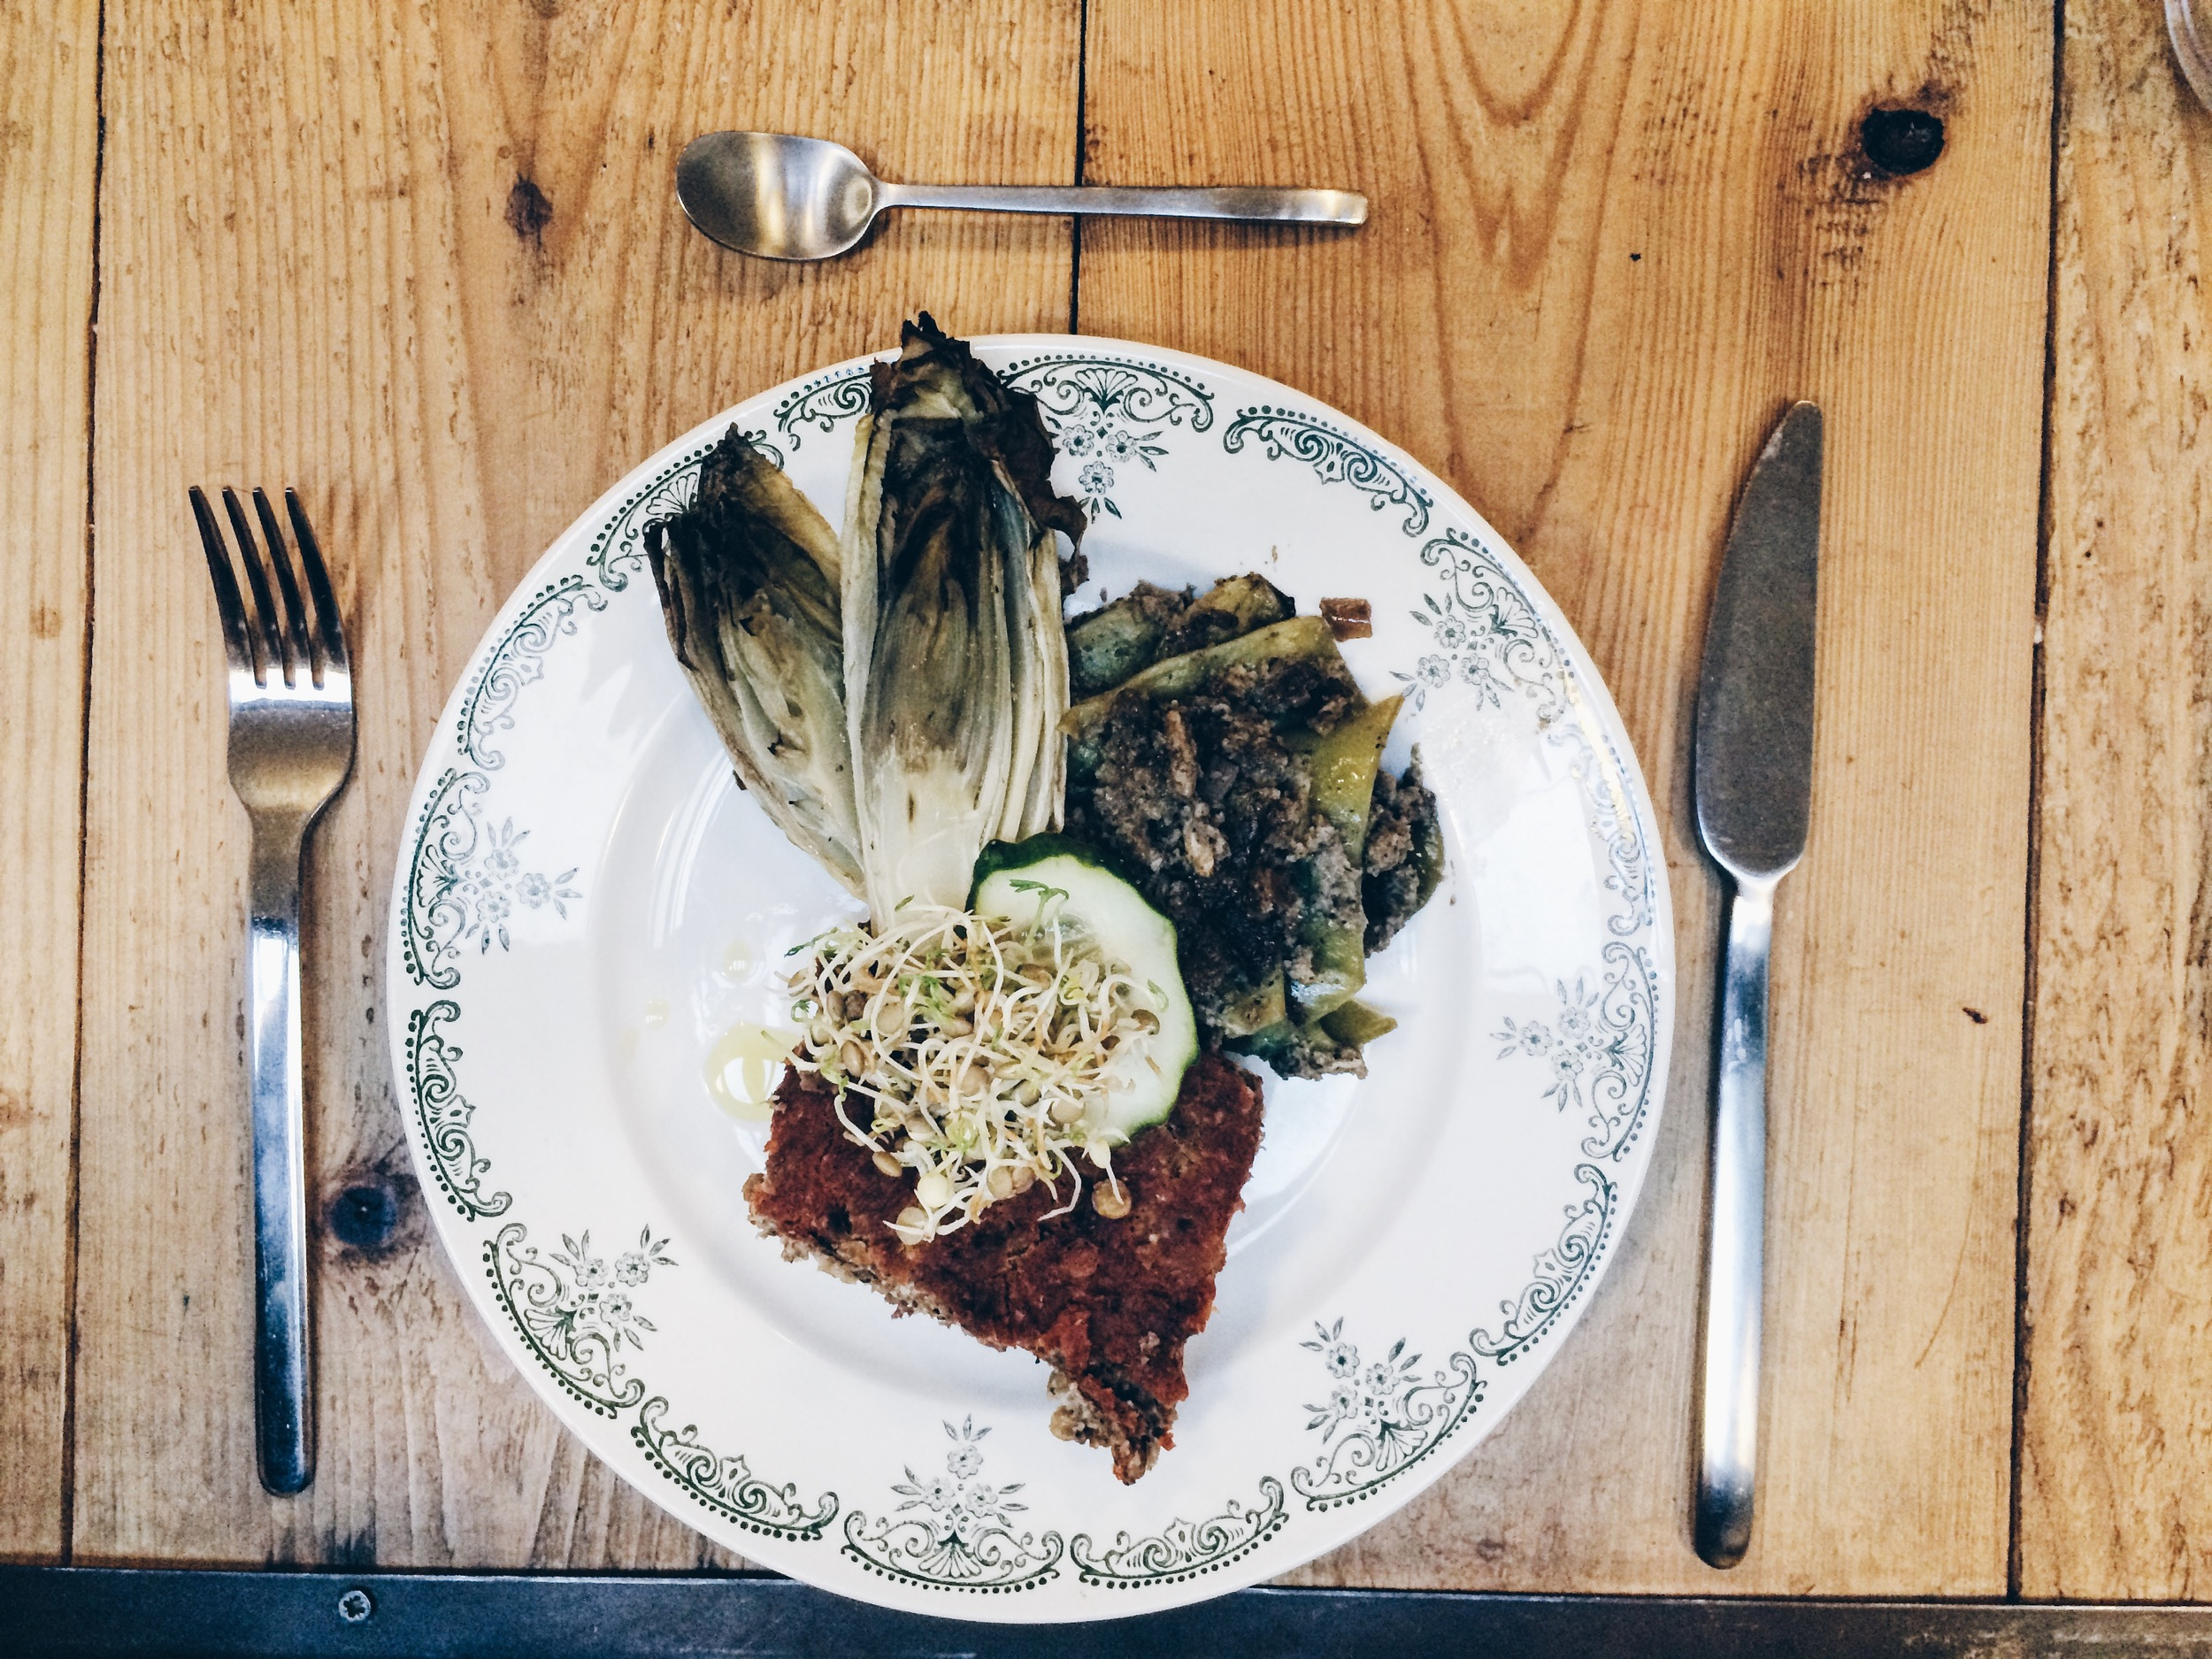 Lentil loaf, a mushroom casserole and roasted chicory at Labcuina.